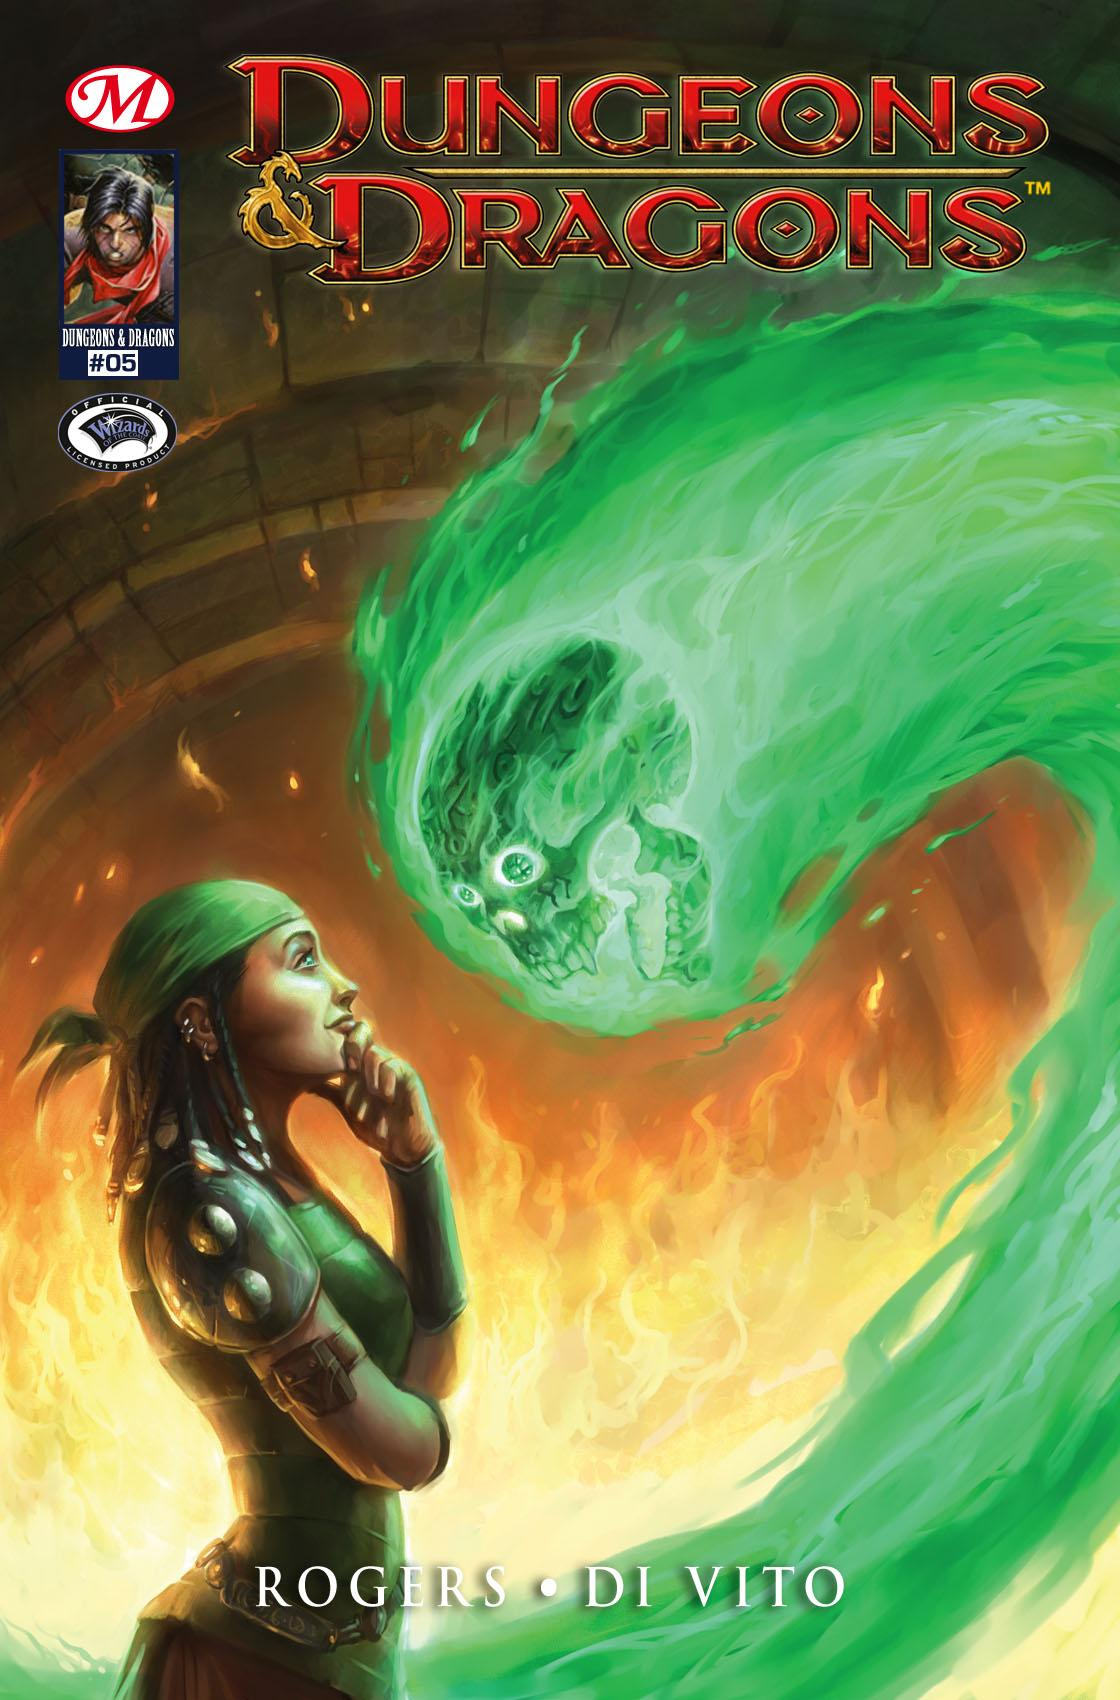 Dungeons & Dragons #5, DUNGEONS & DRAGONS, T1